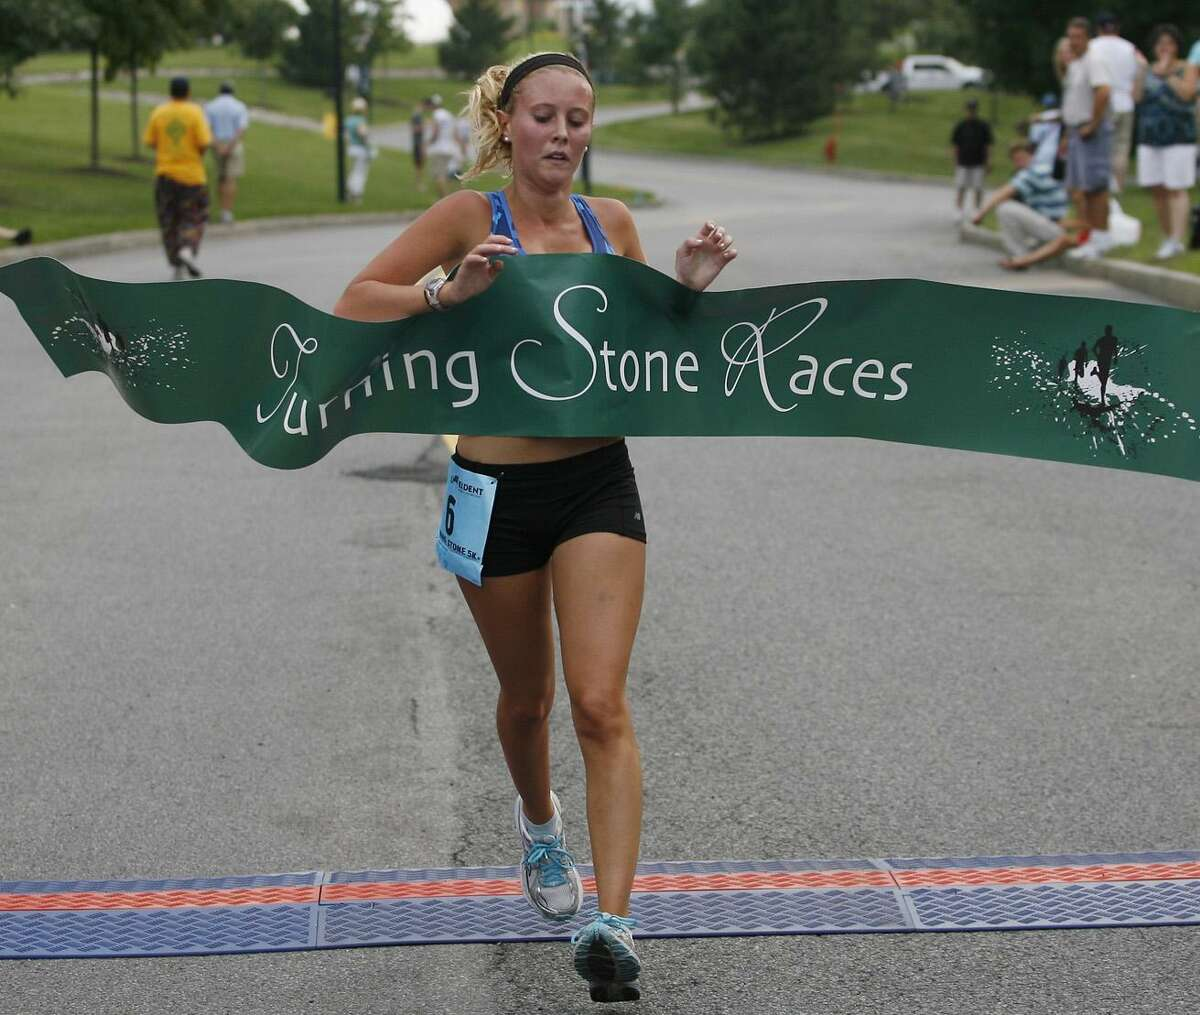 Dispatch Staff Photo by JOHN HAEGERtwitter.com/oneidaphotoMeaghan Anklin crosses the finish line to win the inaugural 5K race at Turning Stone on Friday, Aug. 19, 2011.